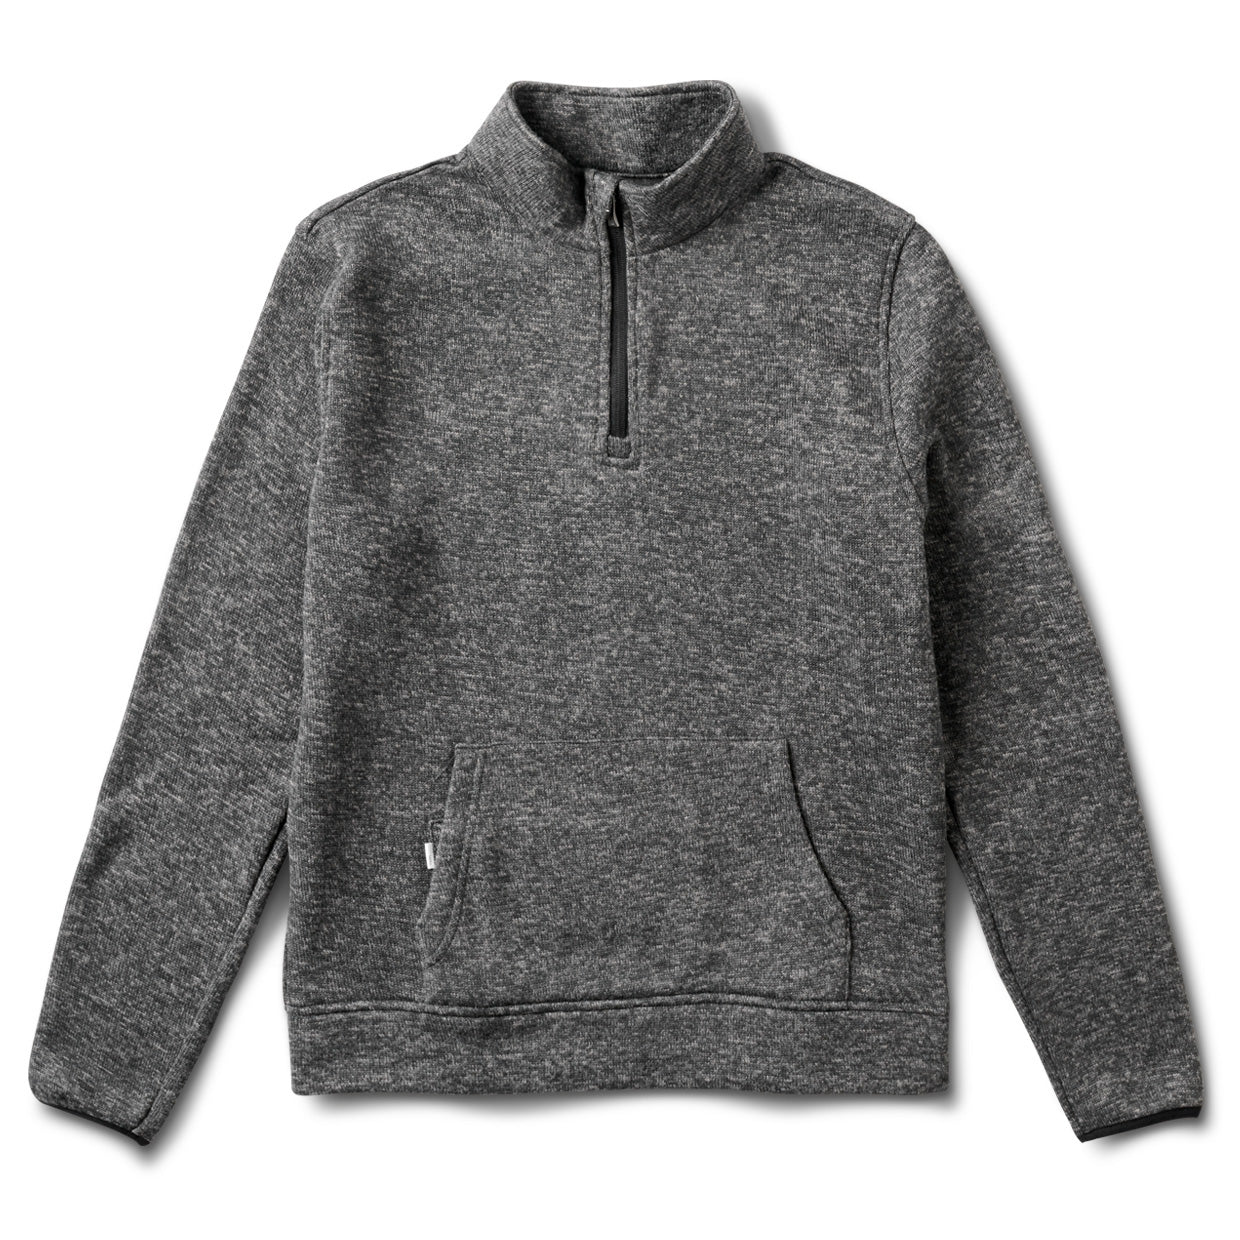 Durango Half Zip | Black Heather